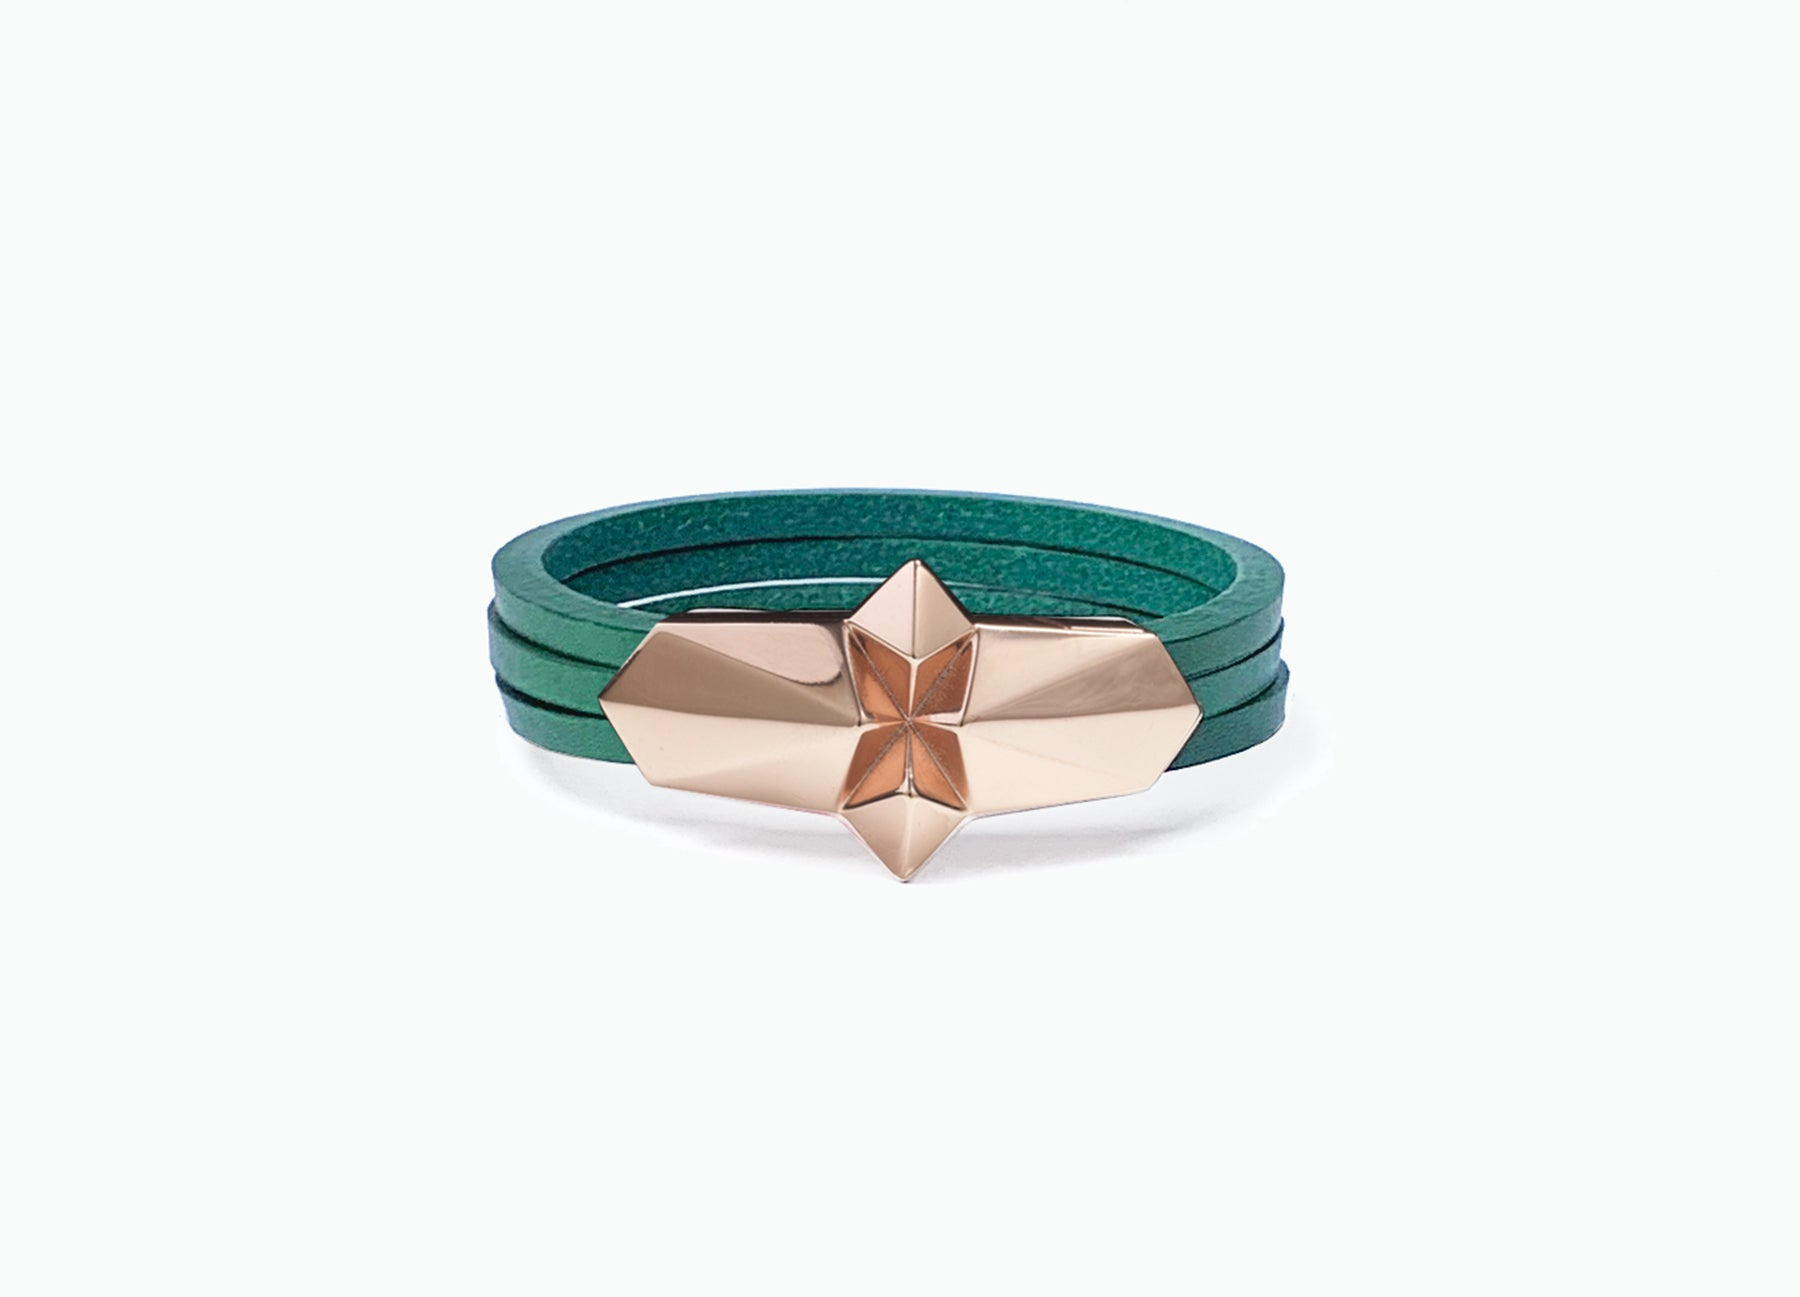 Leather Wrap Shard Bracelet with a rose gold silver plated clasp in Racing Green fine Italian leather by Tomasz Donocik.